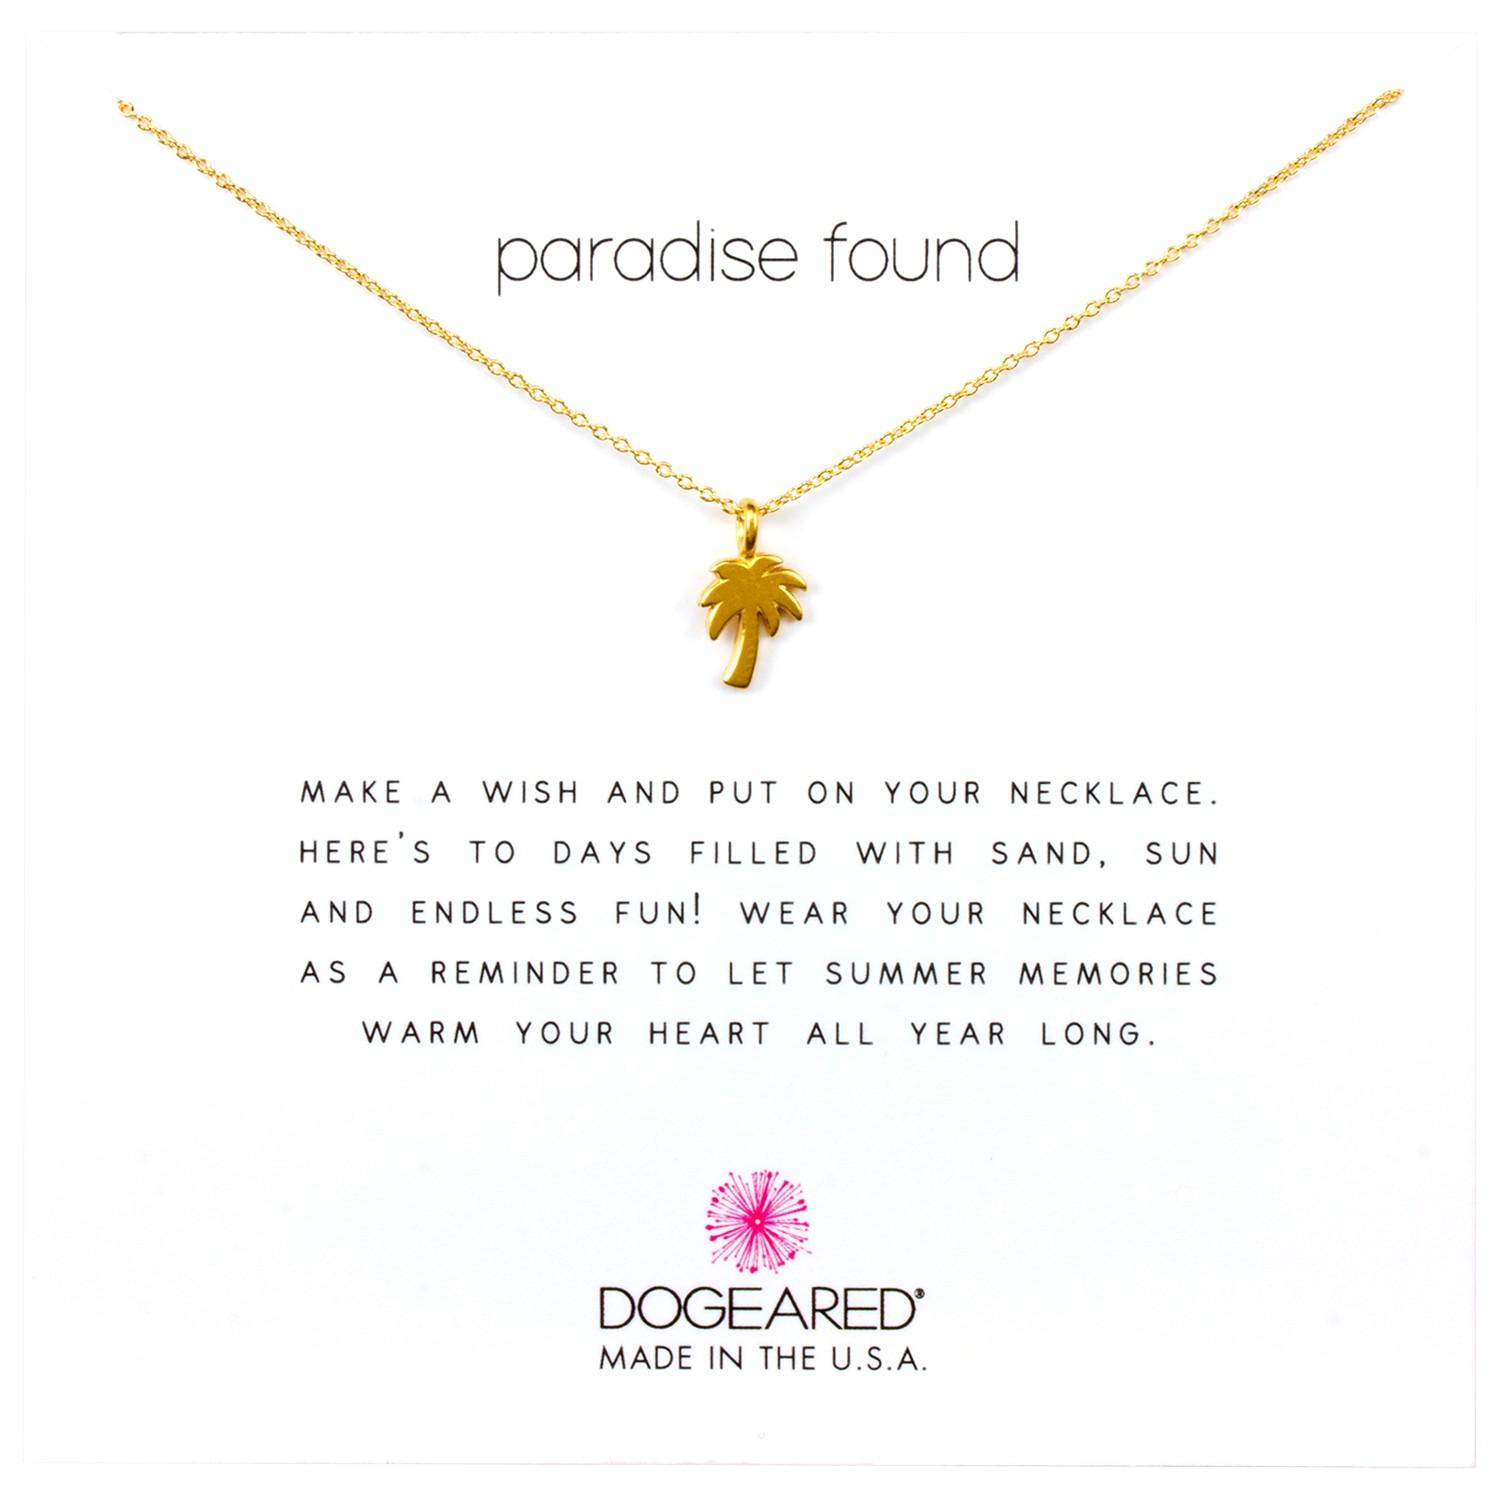 Dogeared Mini Palm Tree Chain Necklace in Gold (Metallic)